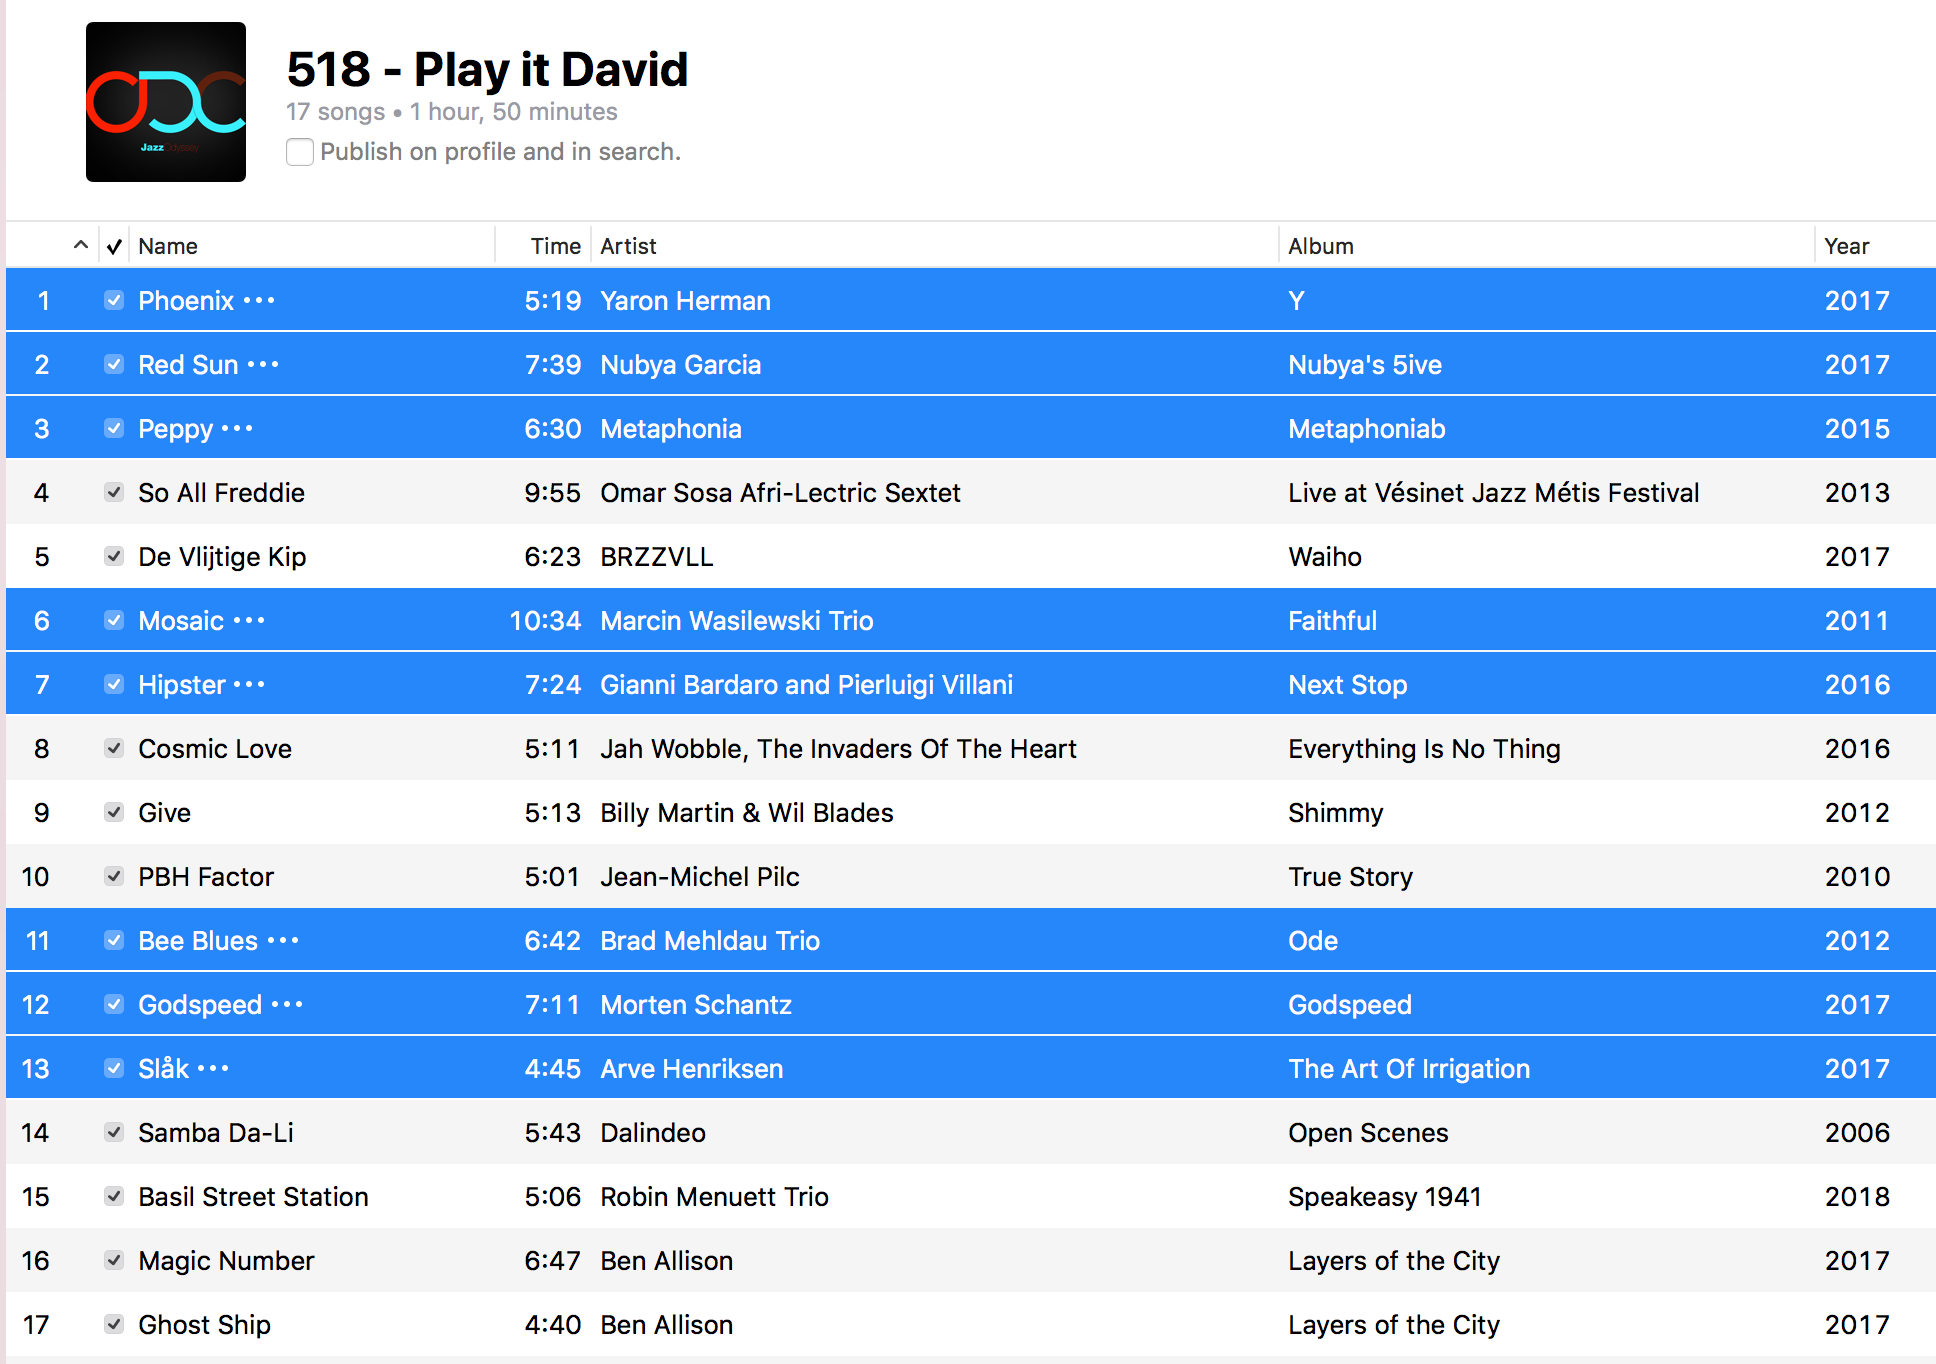 Jazz ODC #518 - Play it David - Playlist